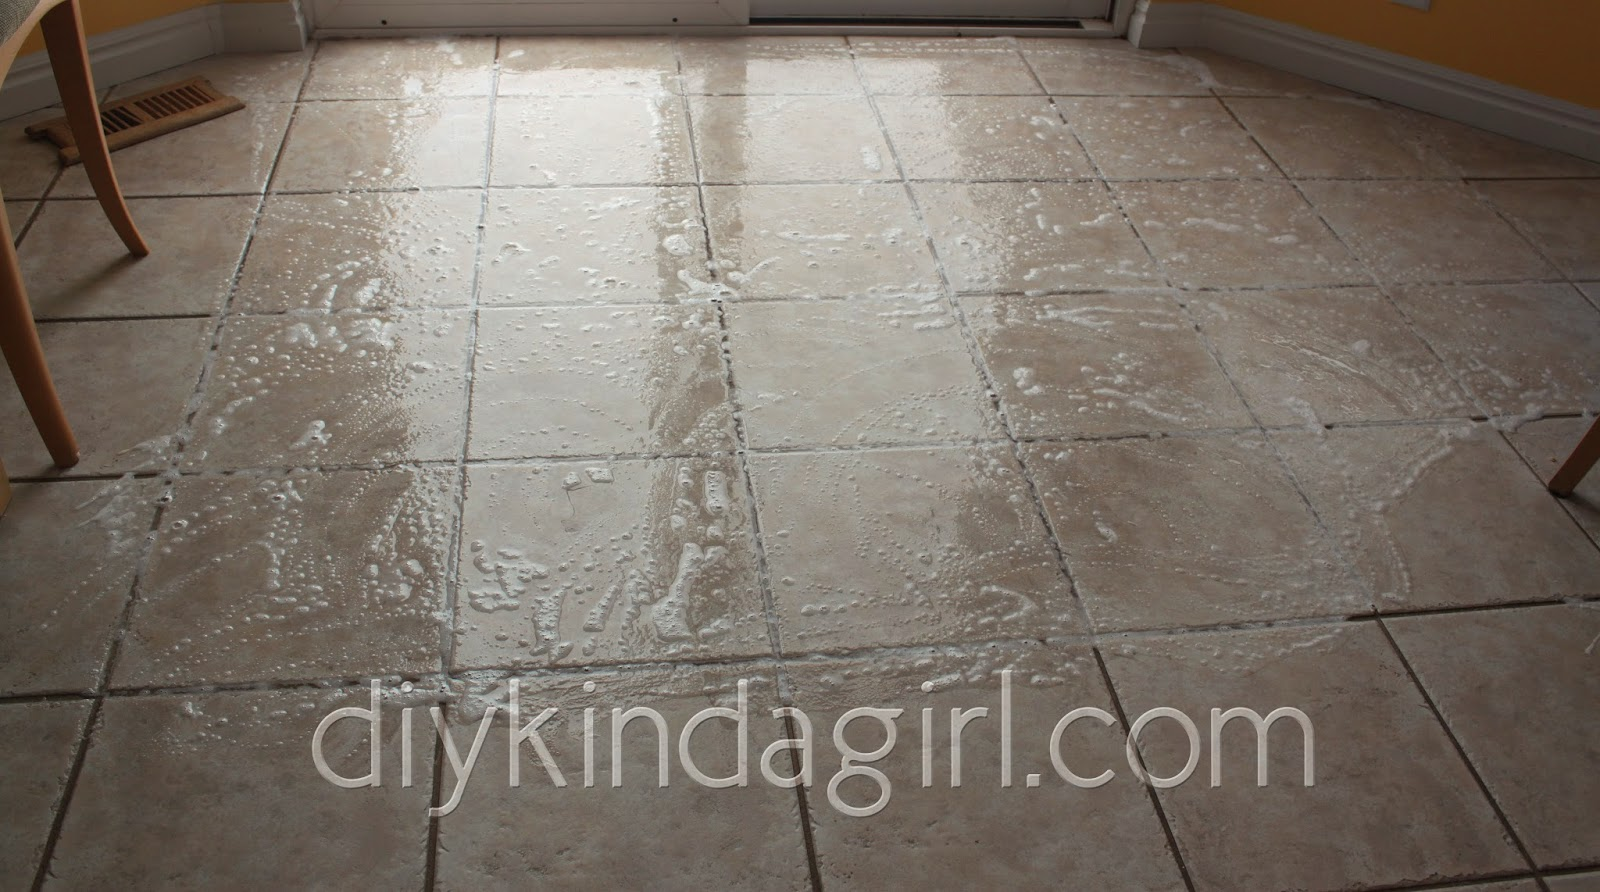 Diy kinda girl diy household tip cleaning grout oxiclean vs diy kinda girl diy household tip cleaning grout oxiclean vs woolite dailygadgetfo Images